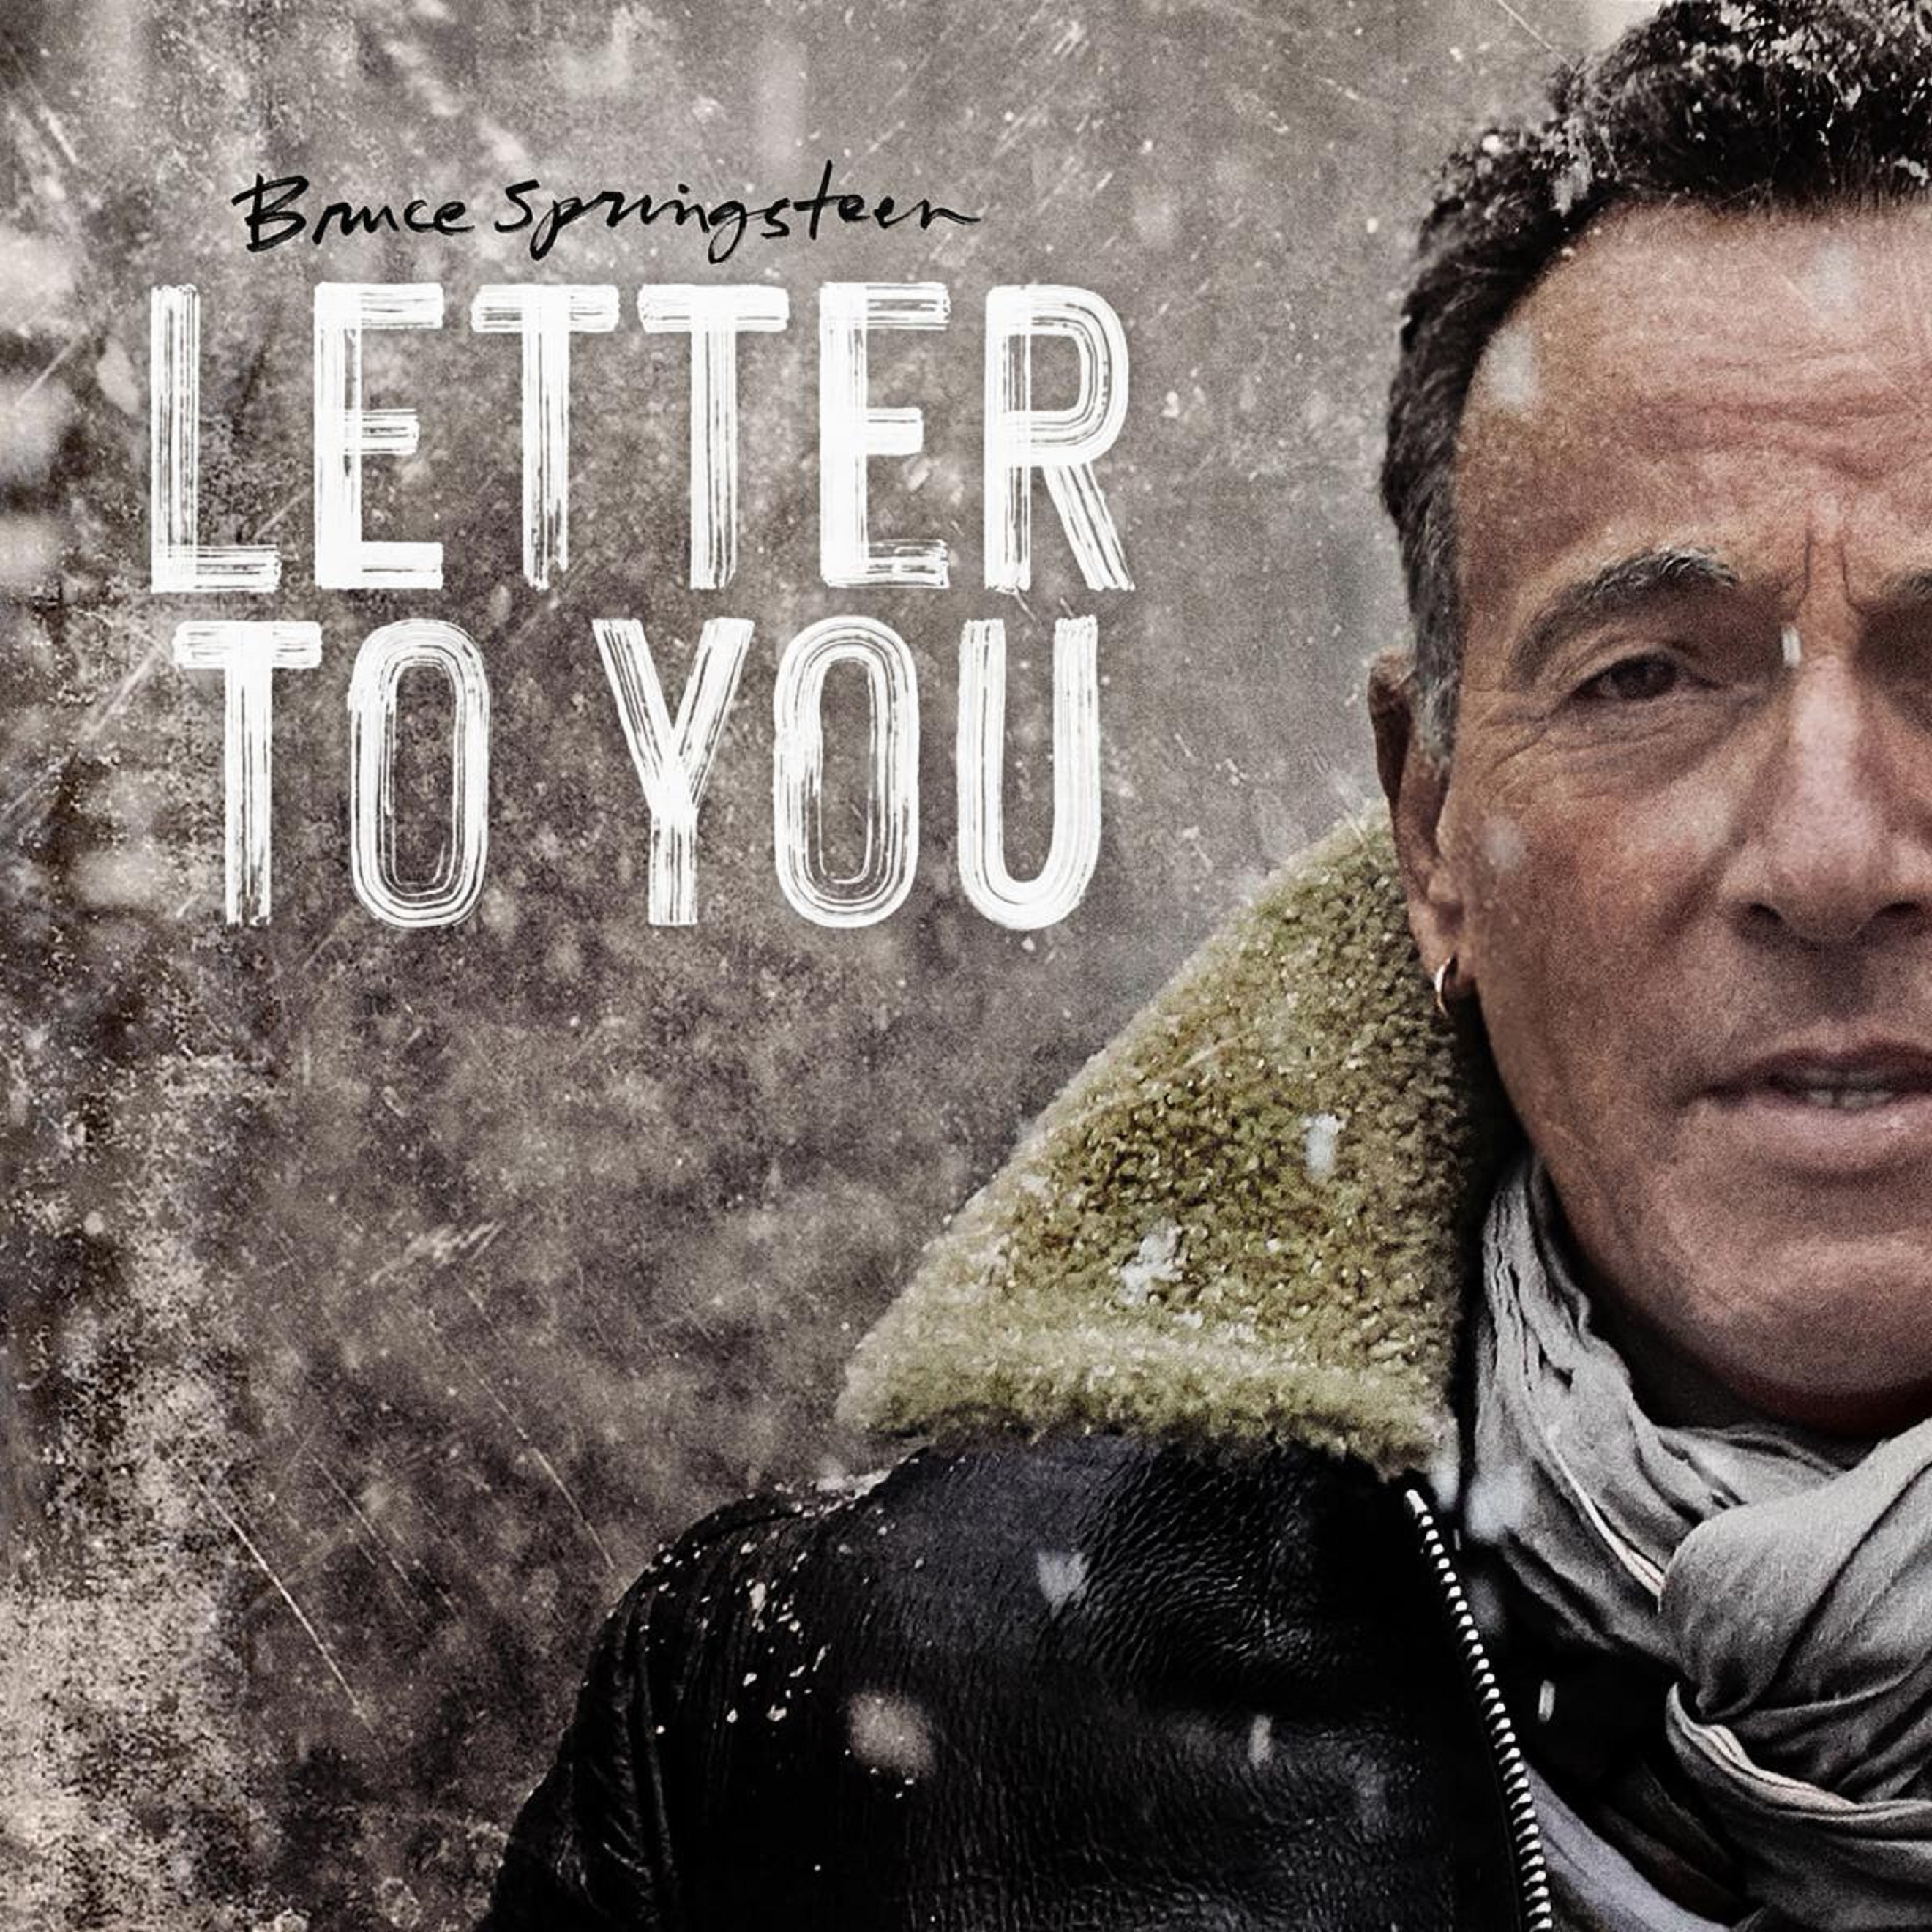 Bruce Springsteen Releases Letter To You